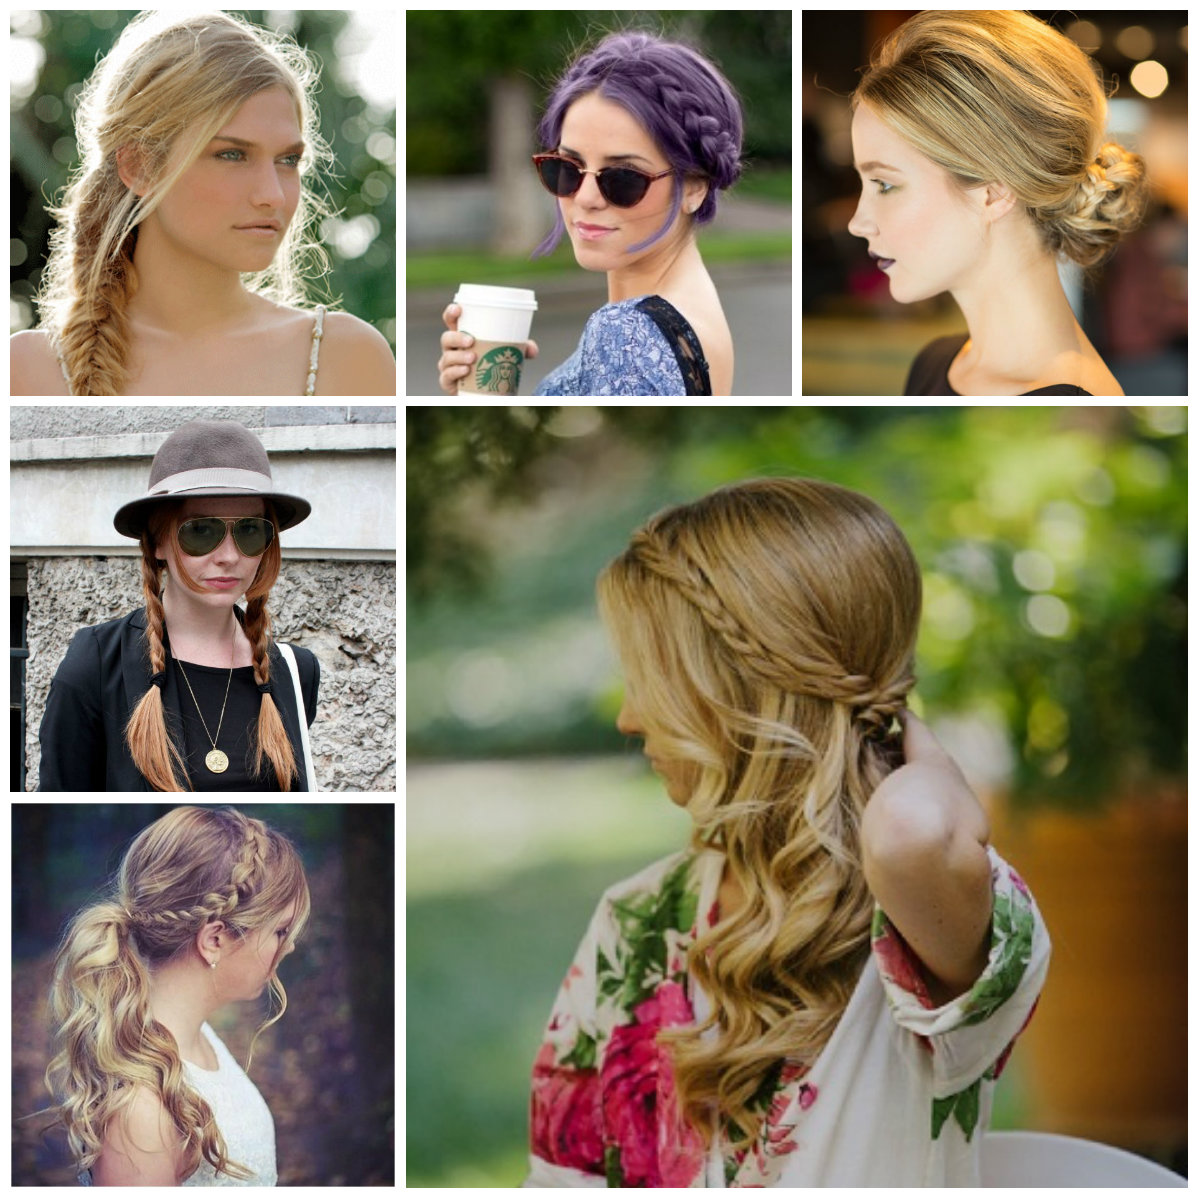 Stupendous 6 Easy To Do Braided Hairstyles For 2016 2017 Haircuts Short Hairstyles For Black Women Fulllsitofus